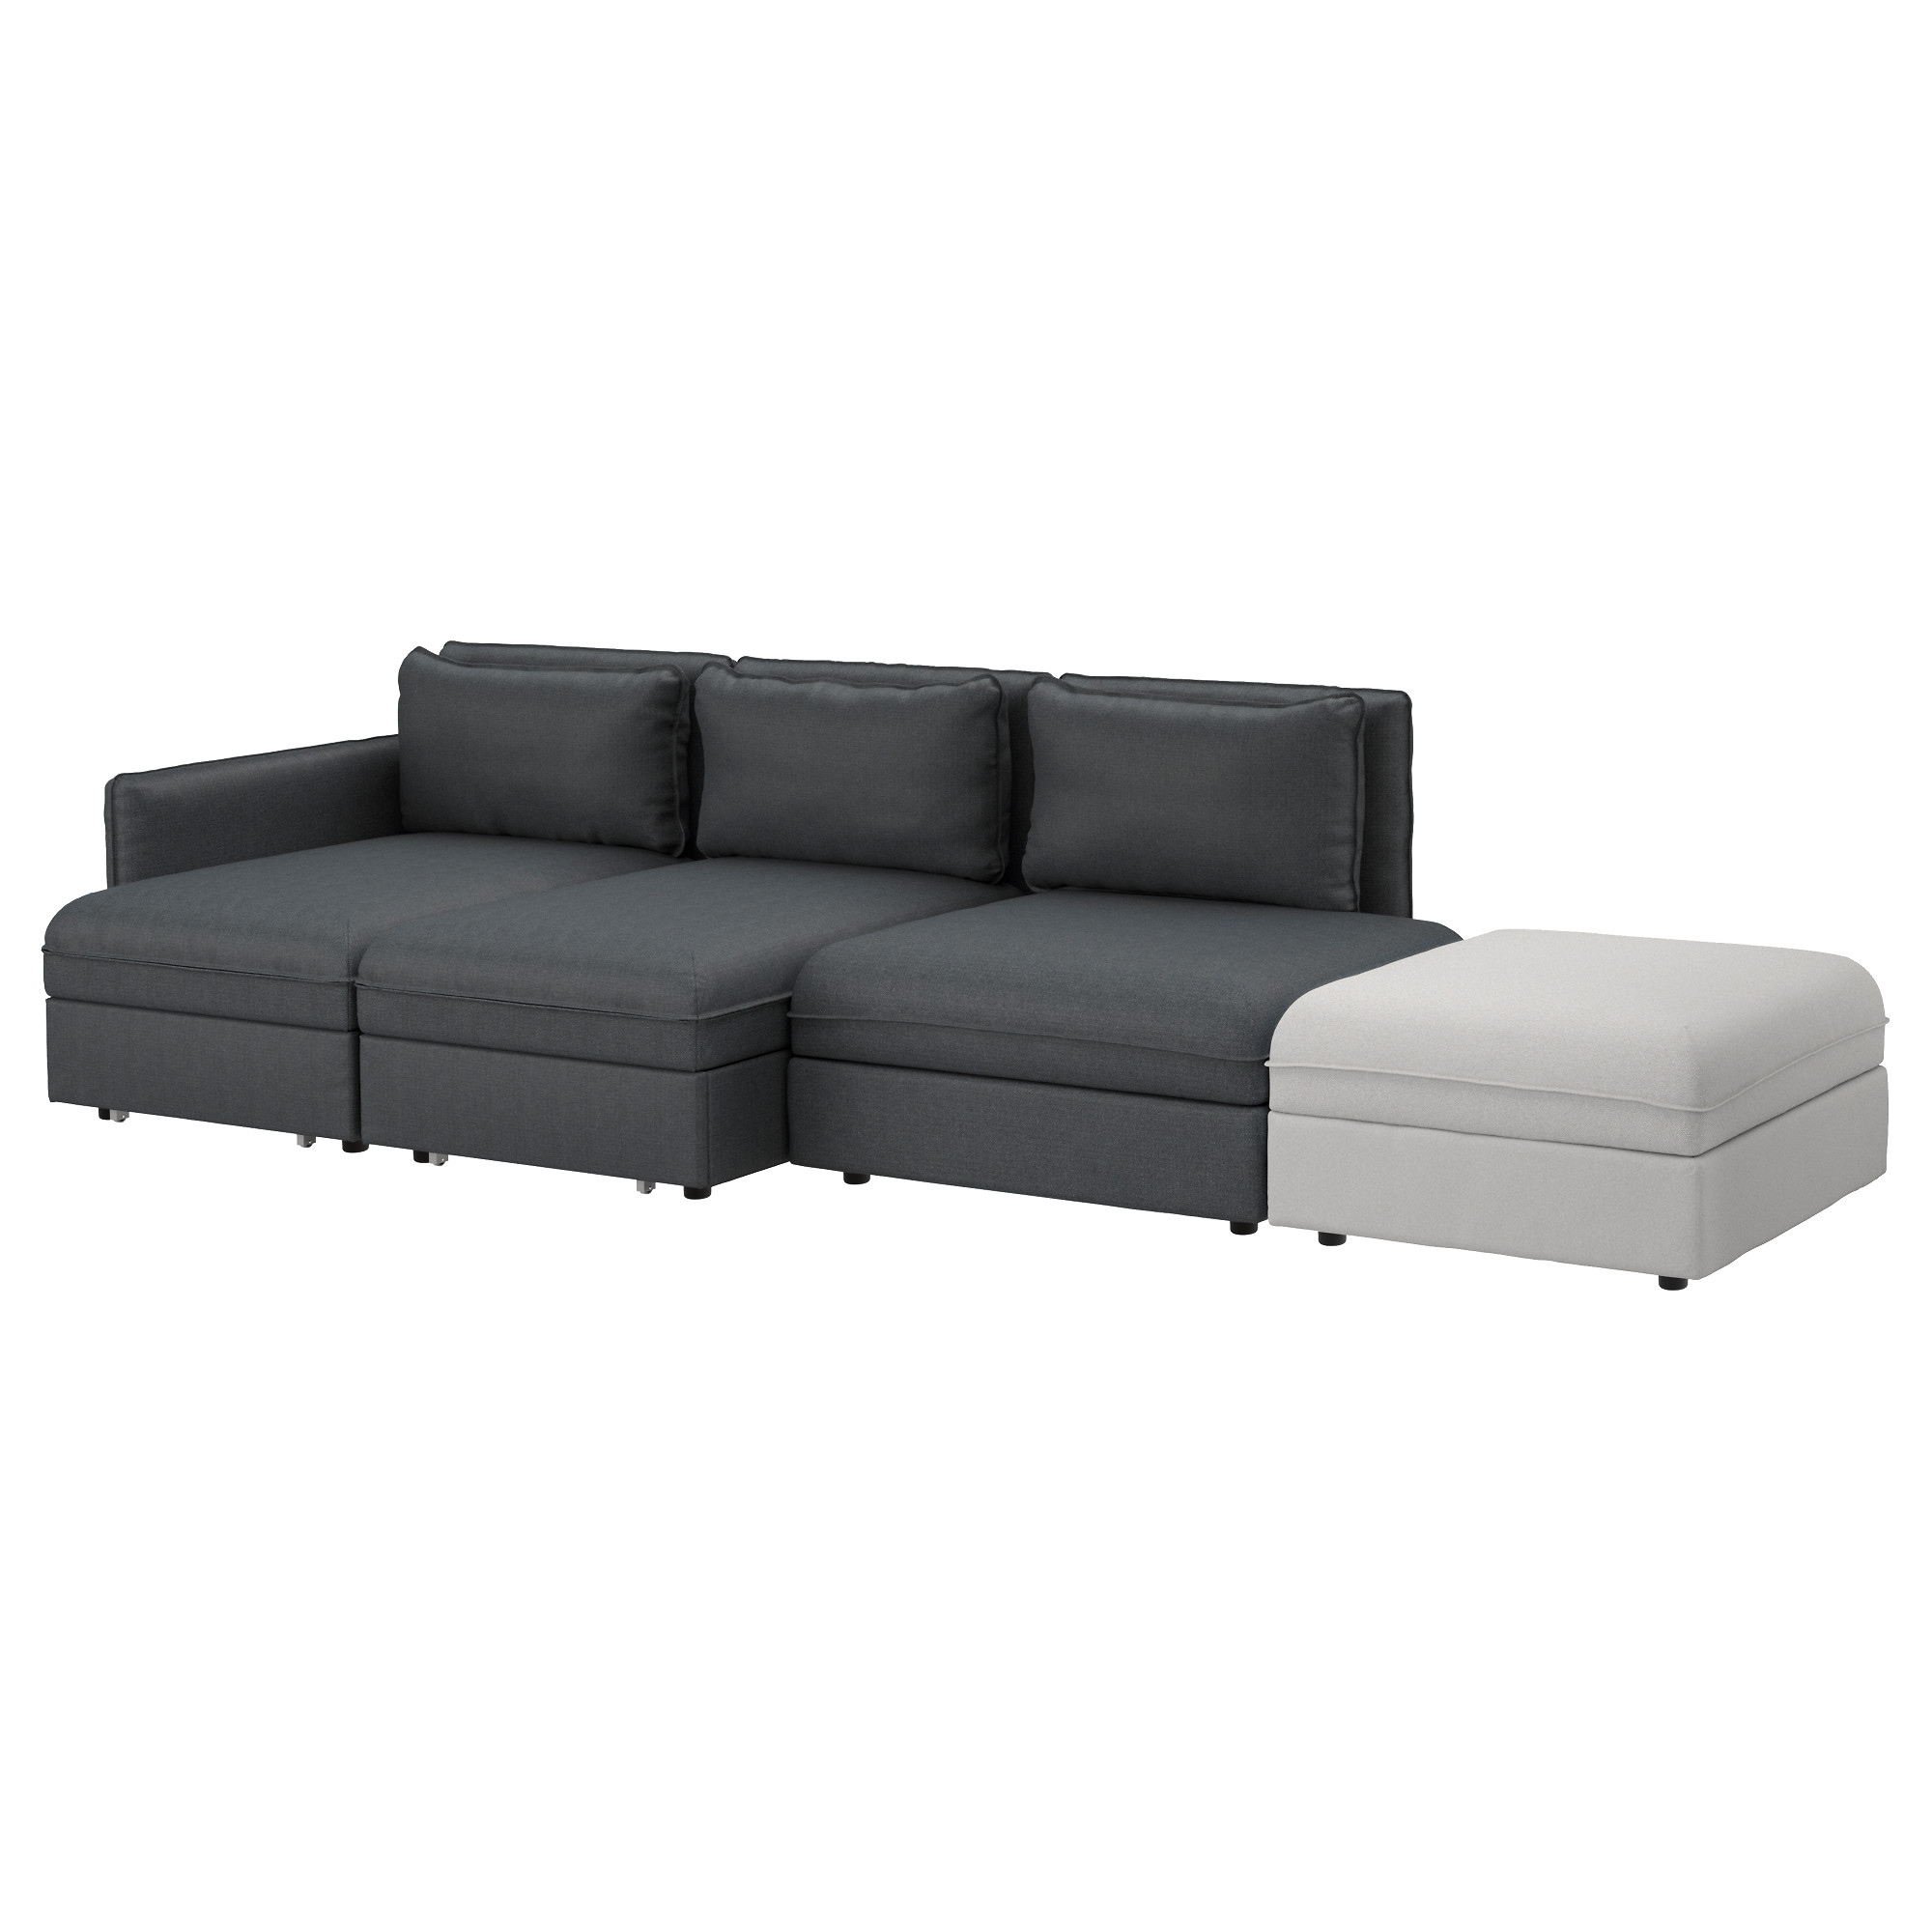 Sleeper sofas Beds & mattresses IKEA